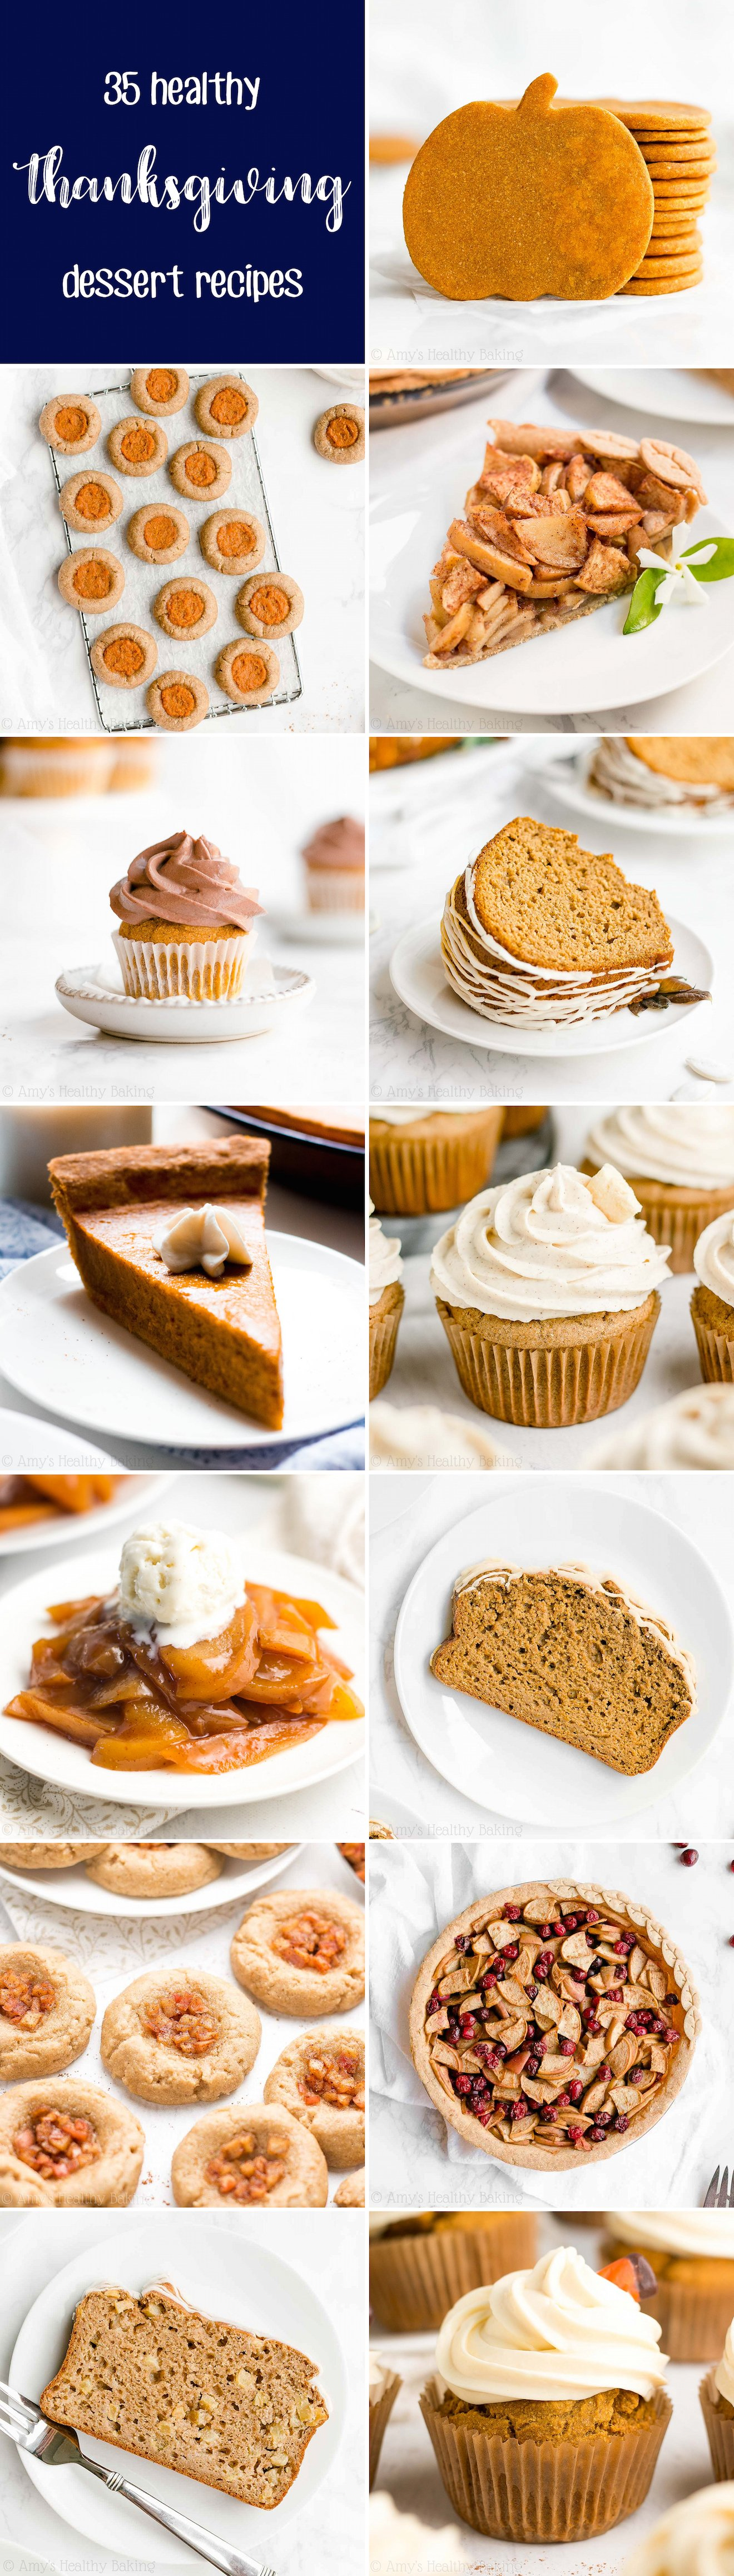 35 Best Healthy Thanksgiving Dessert Recipes with Weight Watchers Points